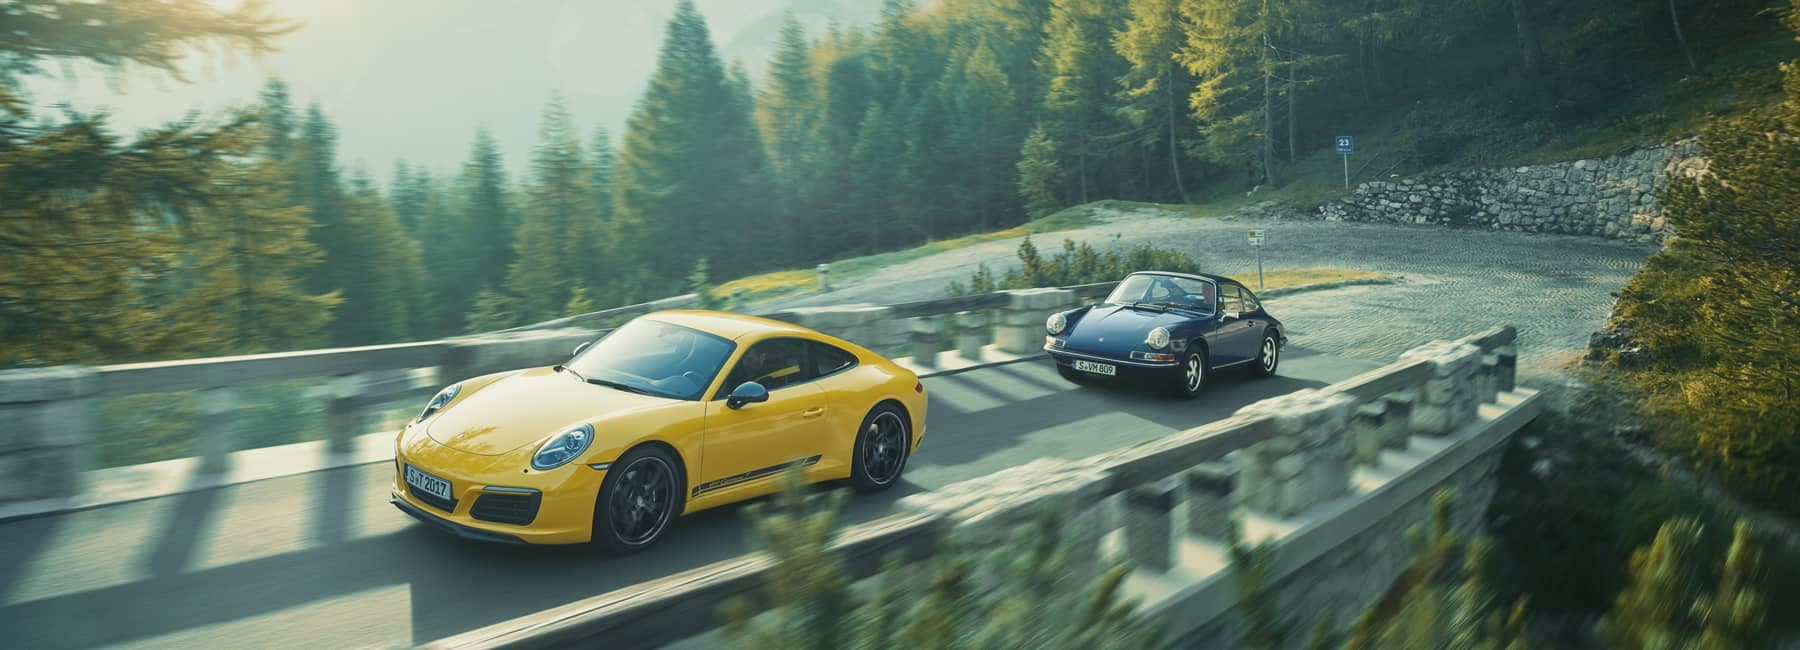 2019 Porsche 911 Review with Specs, Price & Photos at Blue Grass MOTORSPORT